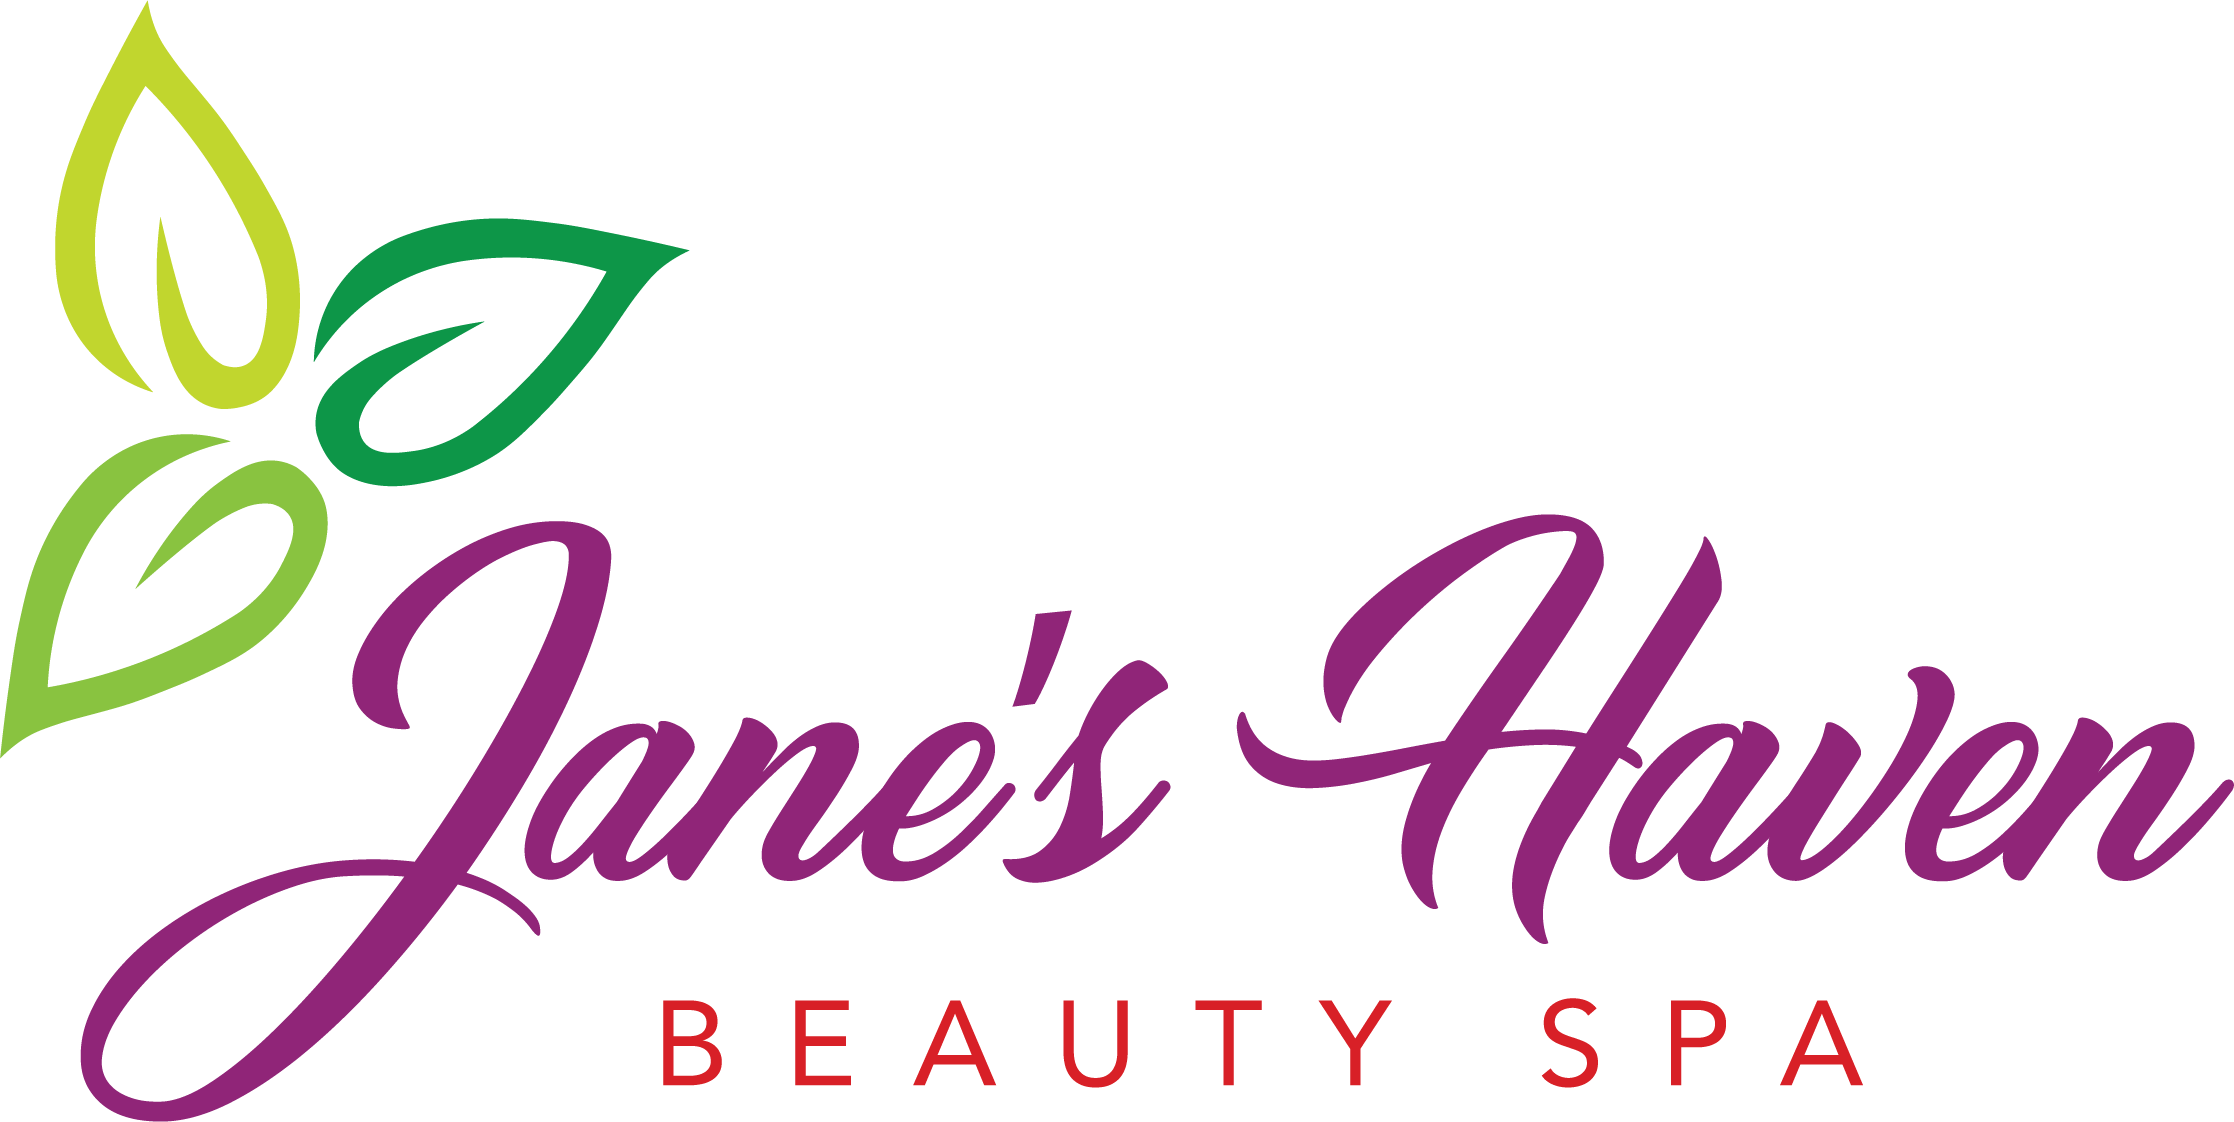 An Oasis of Beauty & Serenity Spa in Lekki Phase 1, Lagos